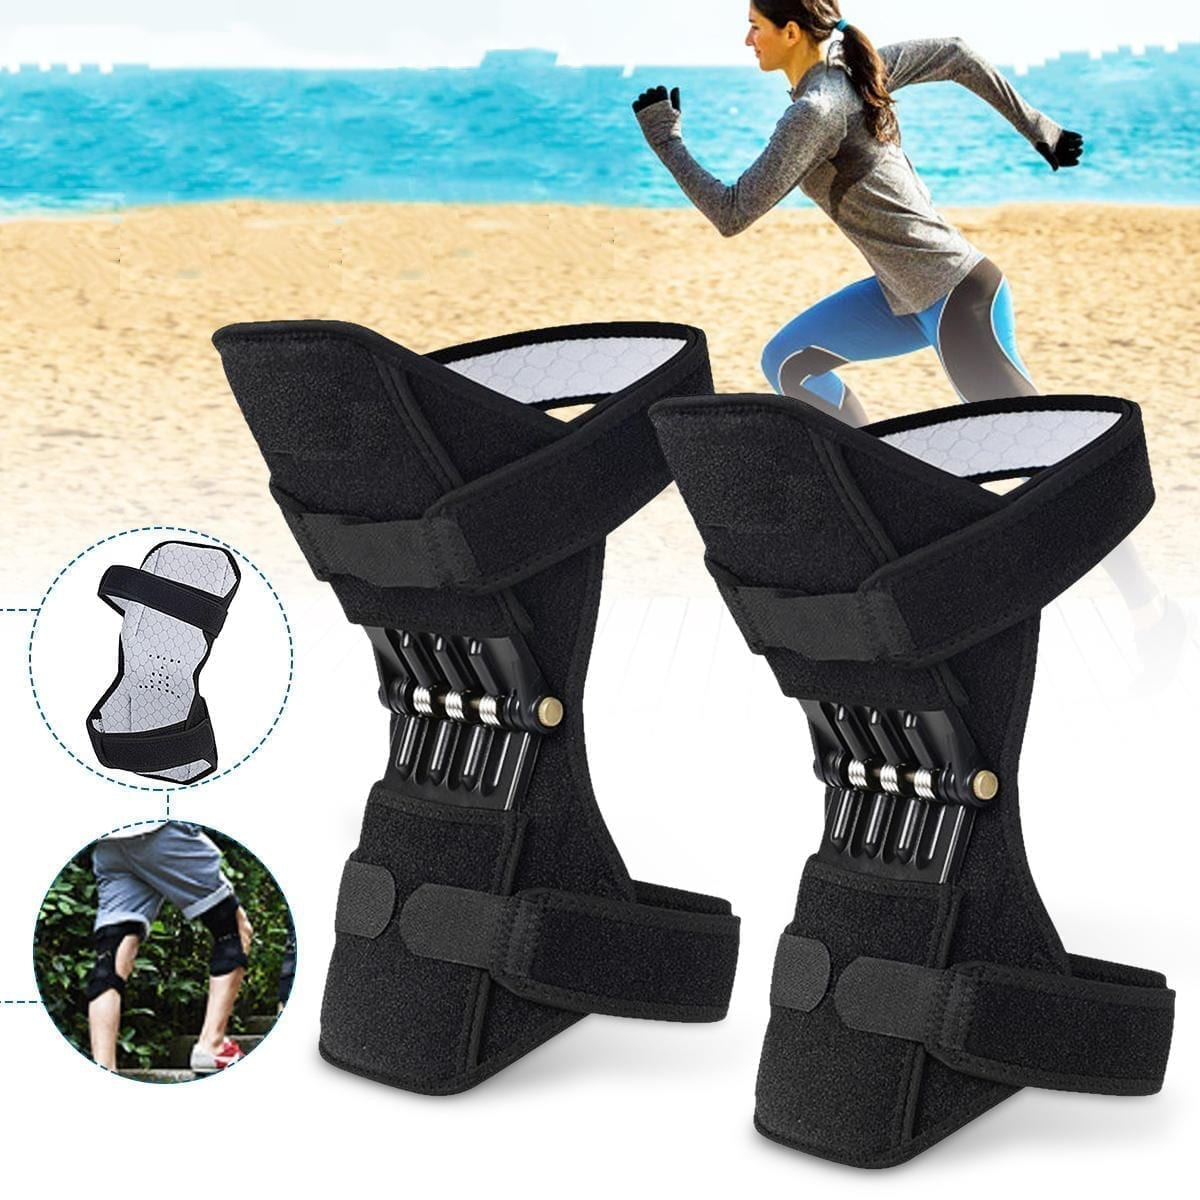 Buy Online Power Knee Stabilizer Pads Leg Knee Joint Support In Pakistan